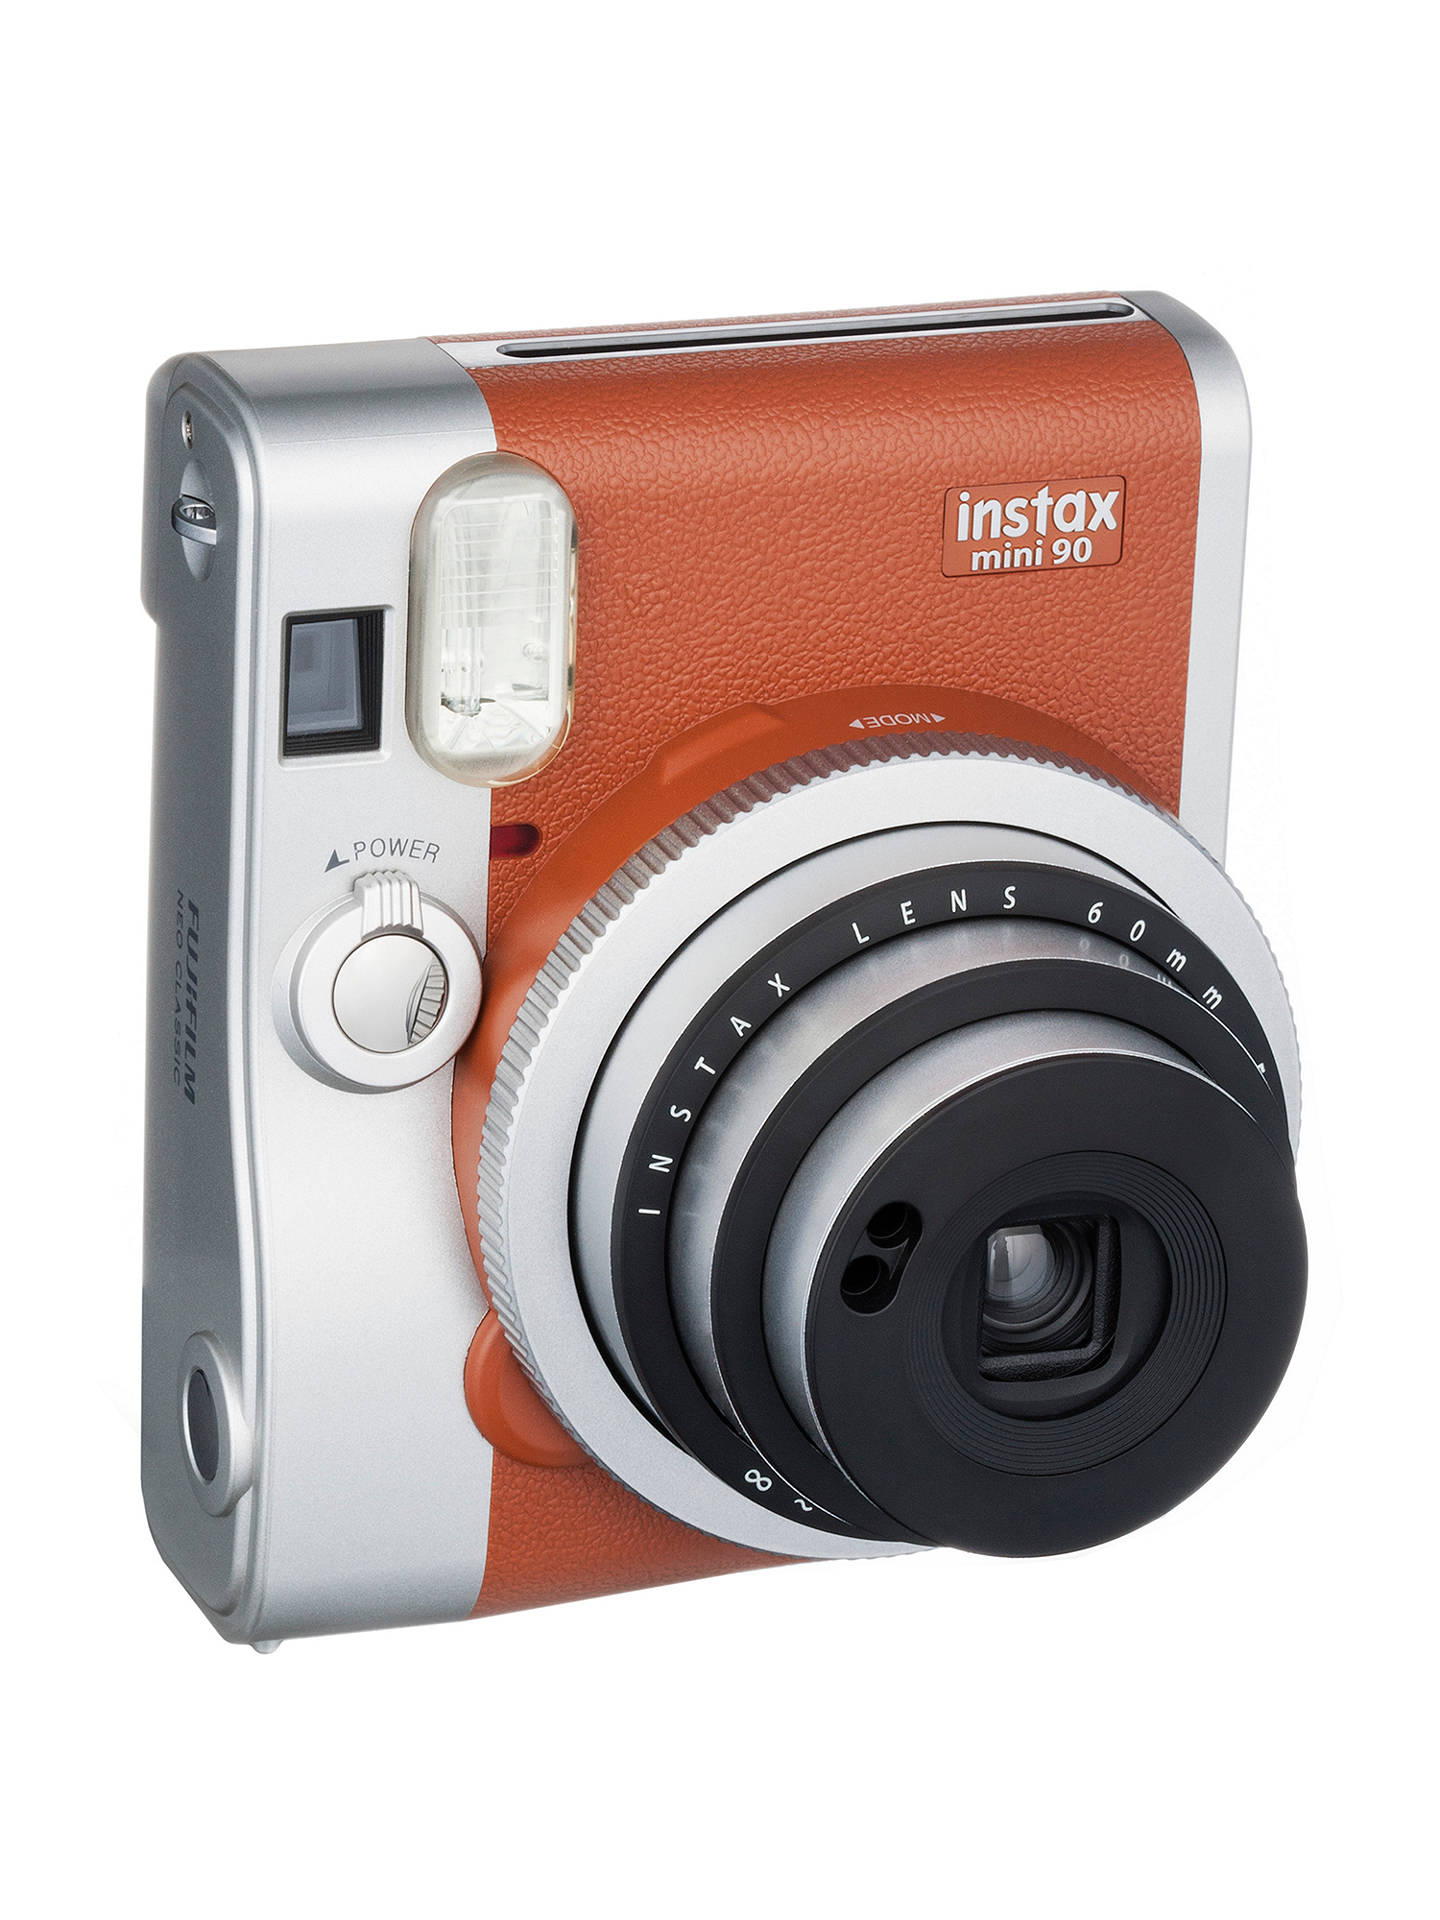 BuyFujifilm Instax Mini 90 Instant Camera with 10 Shots of Film, Built-In Flash & Hand Strap, Tan Online at johnlewis.com